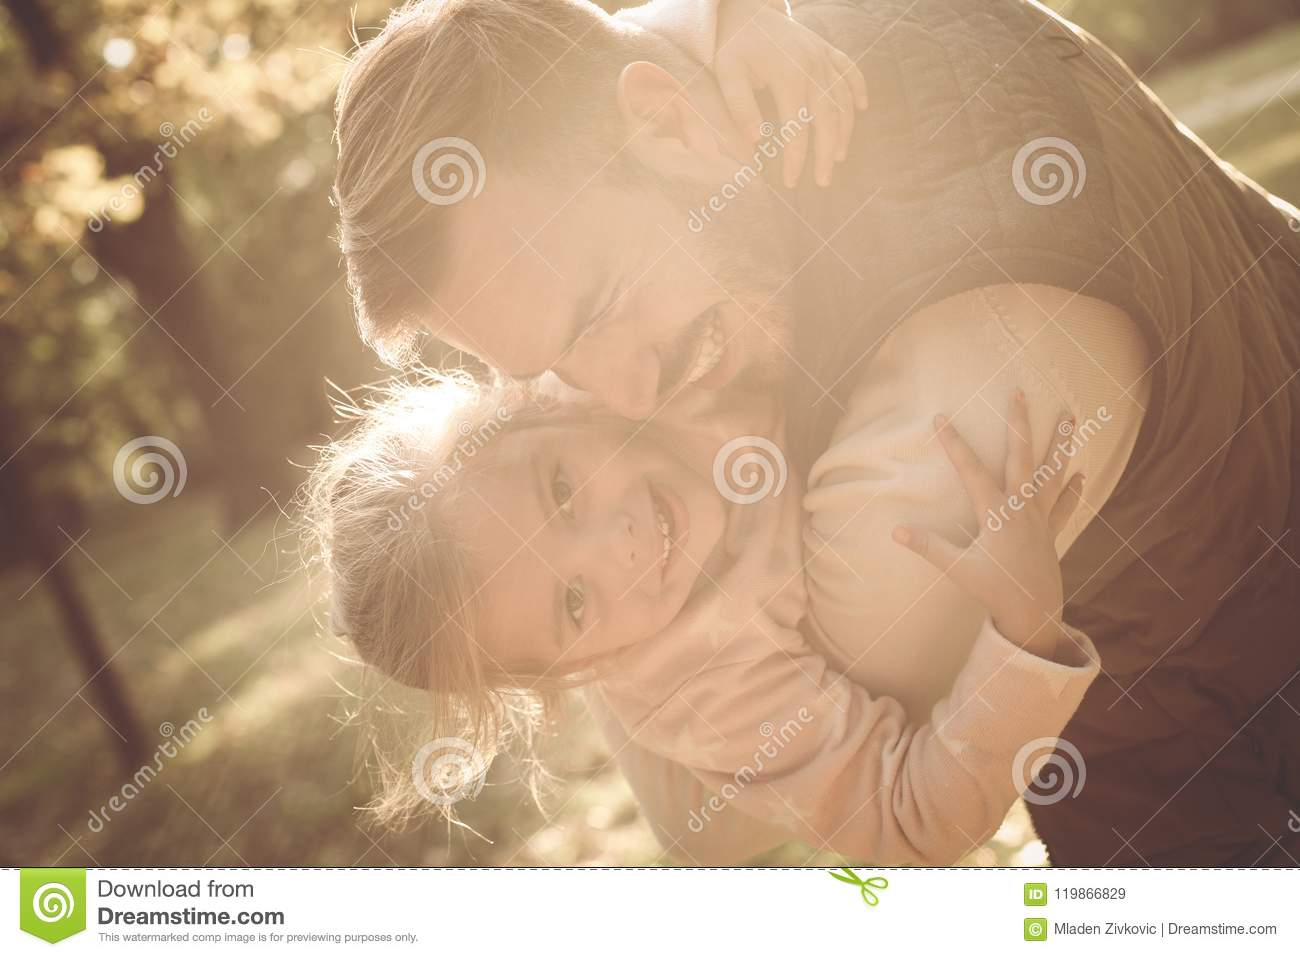 Smiling father and his little girl plying in park together.